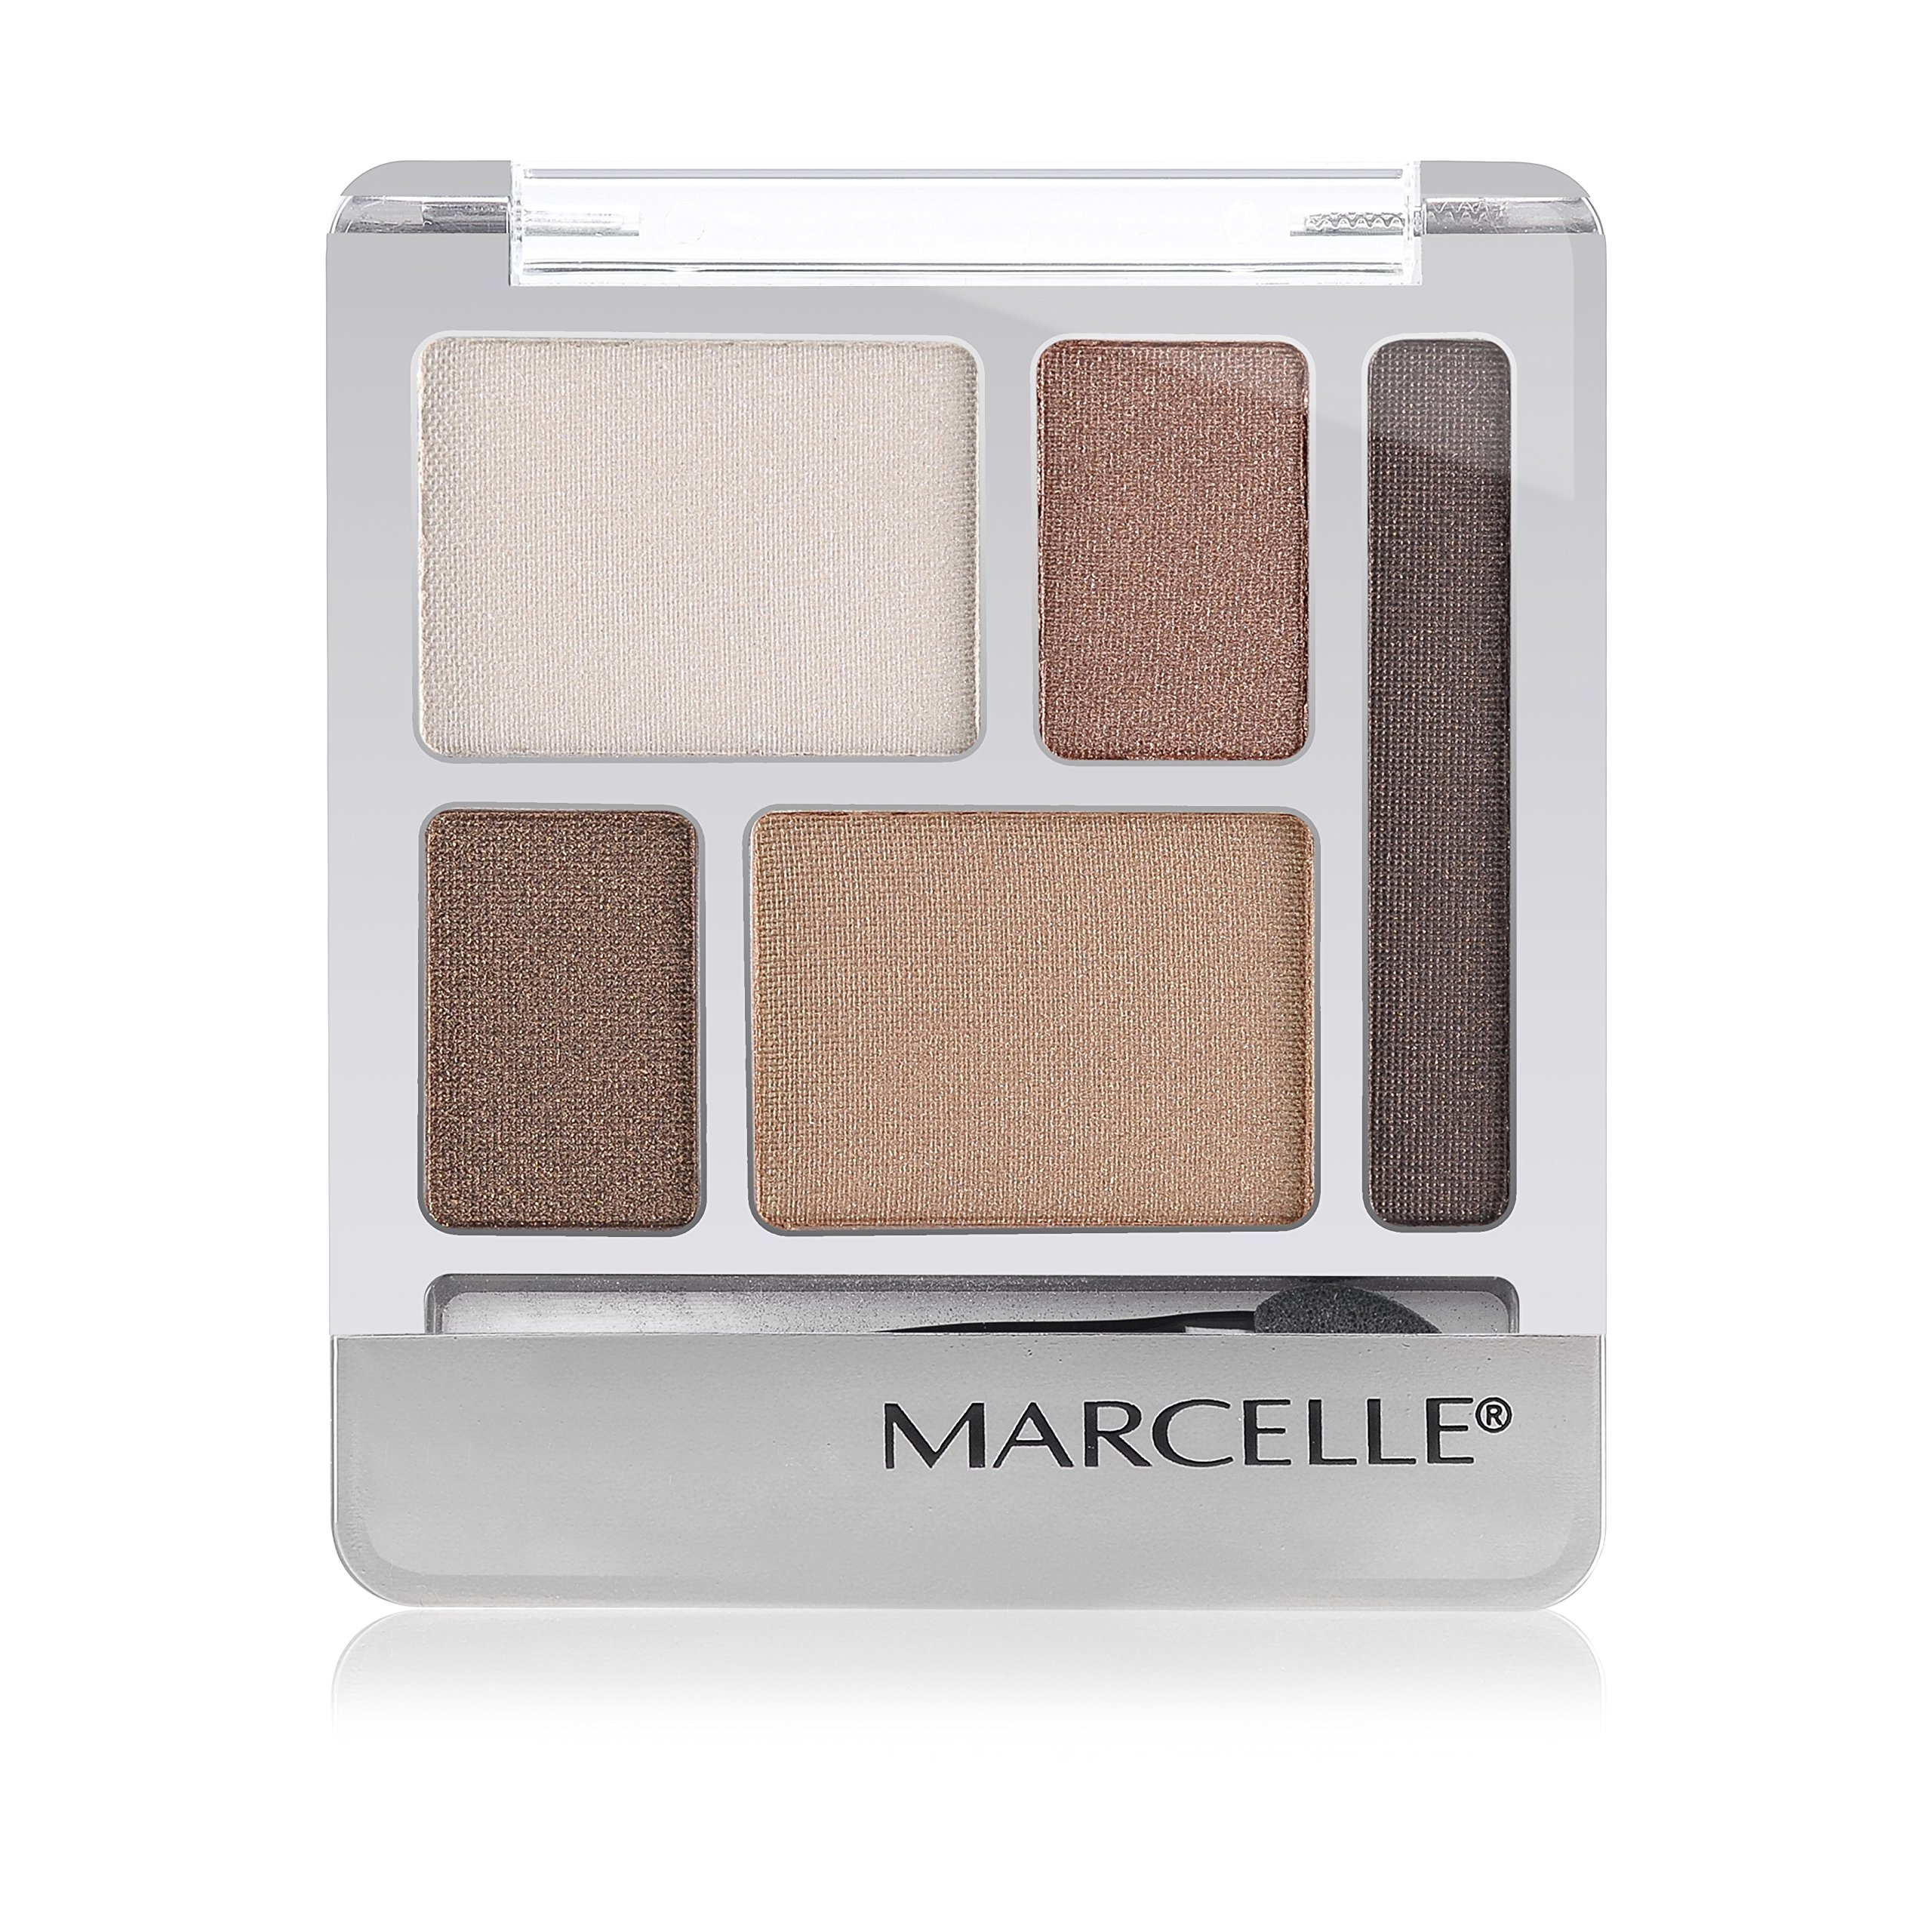 Marcelle Quintet Eyeshadow, Copper Fever, Hypoallergenic and Fragrance-Free, 0.20 oz